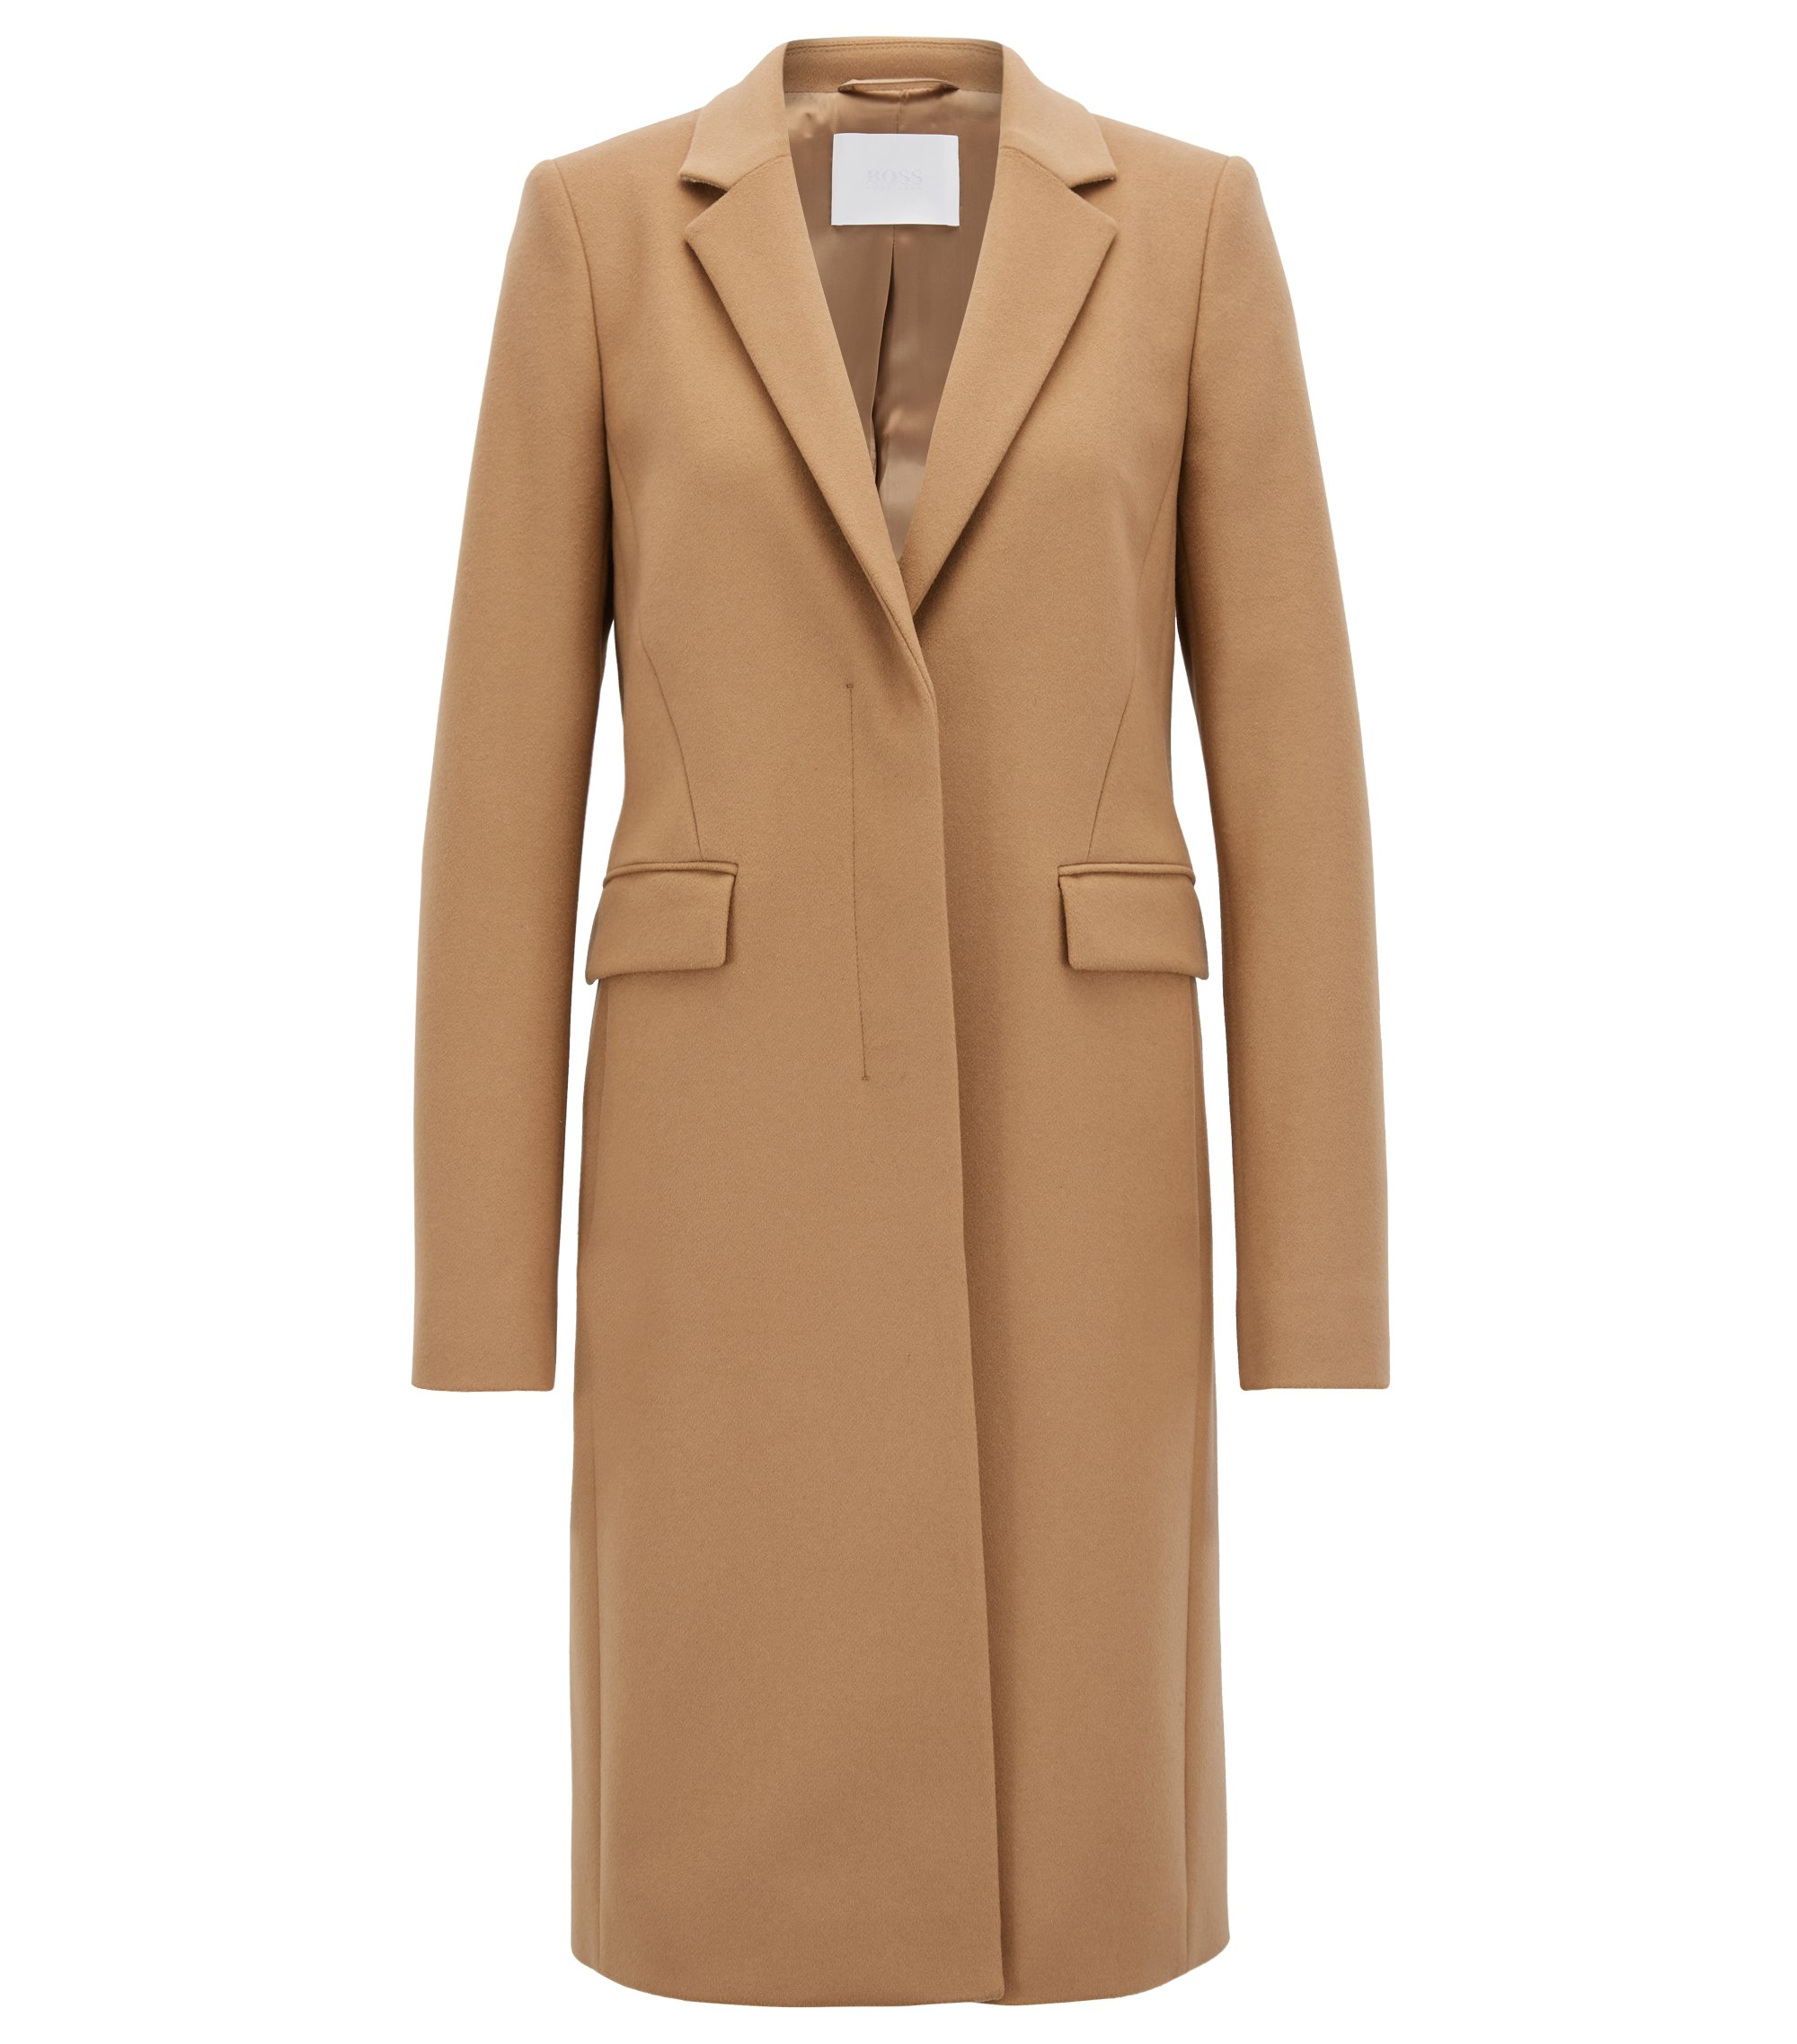 Blazer-style coat in Italian virgin wool and cashmere, Braun